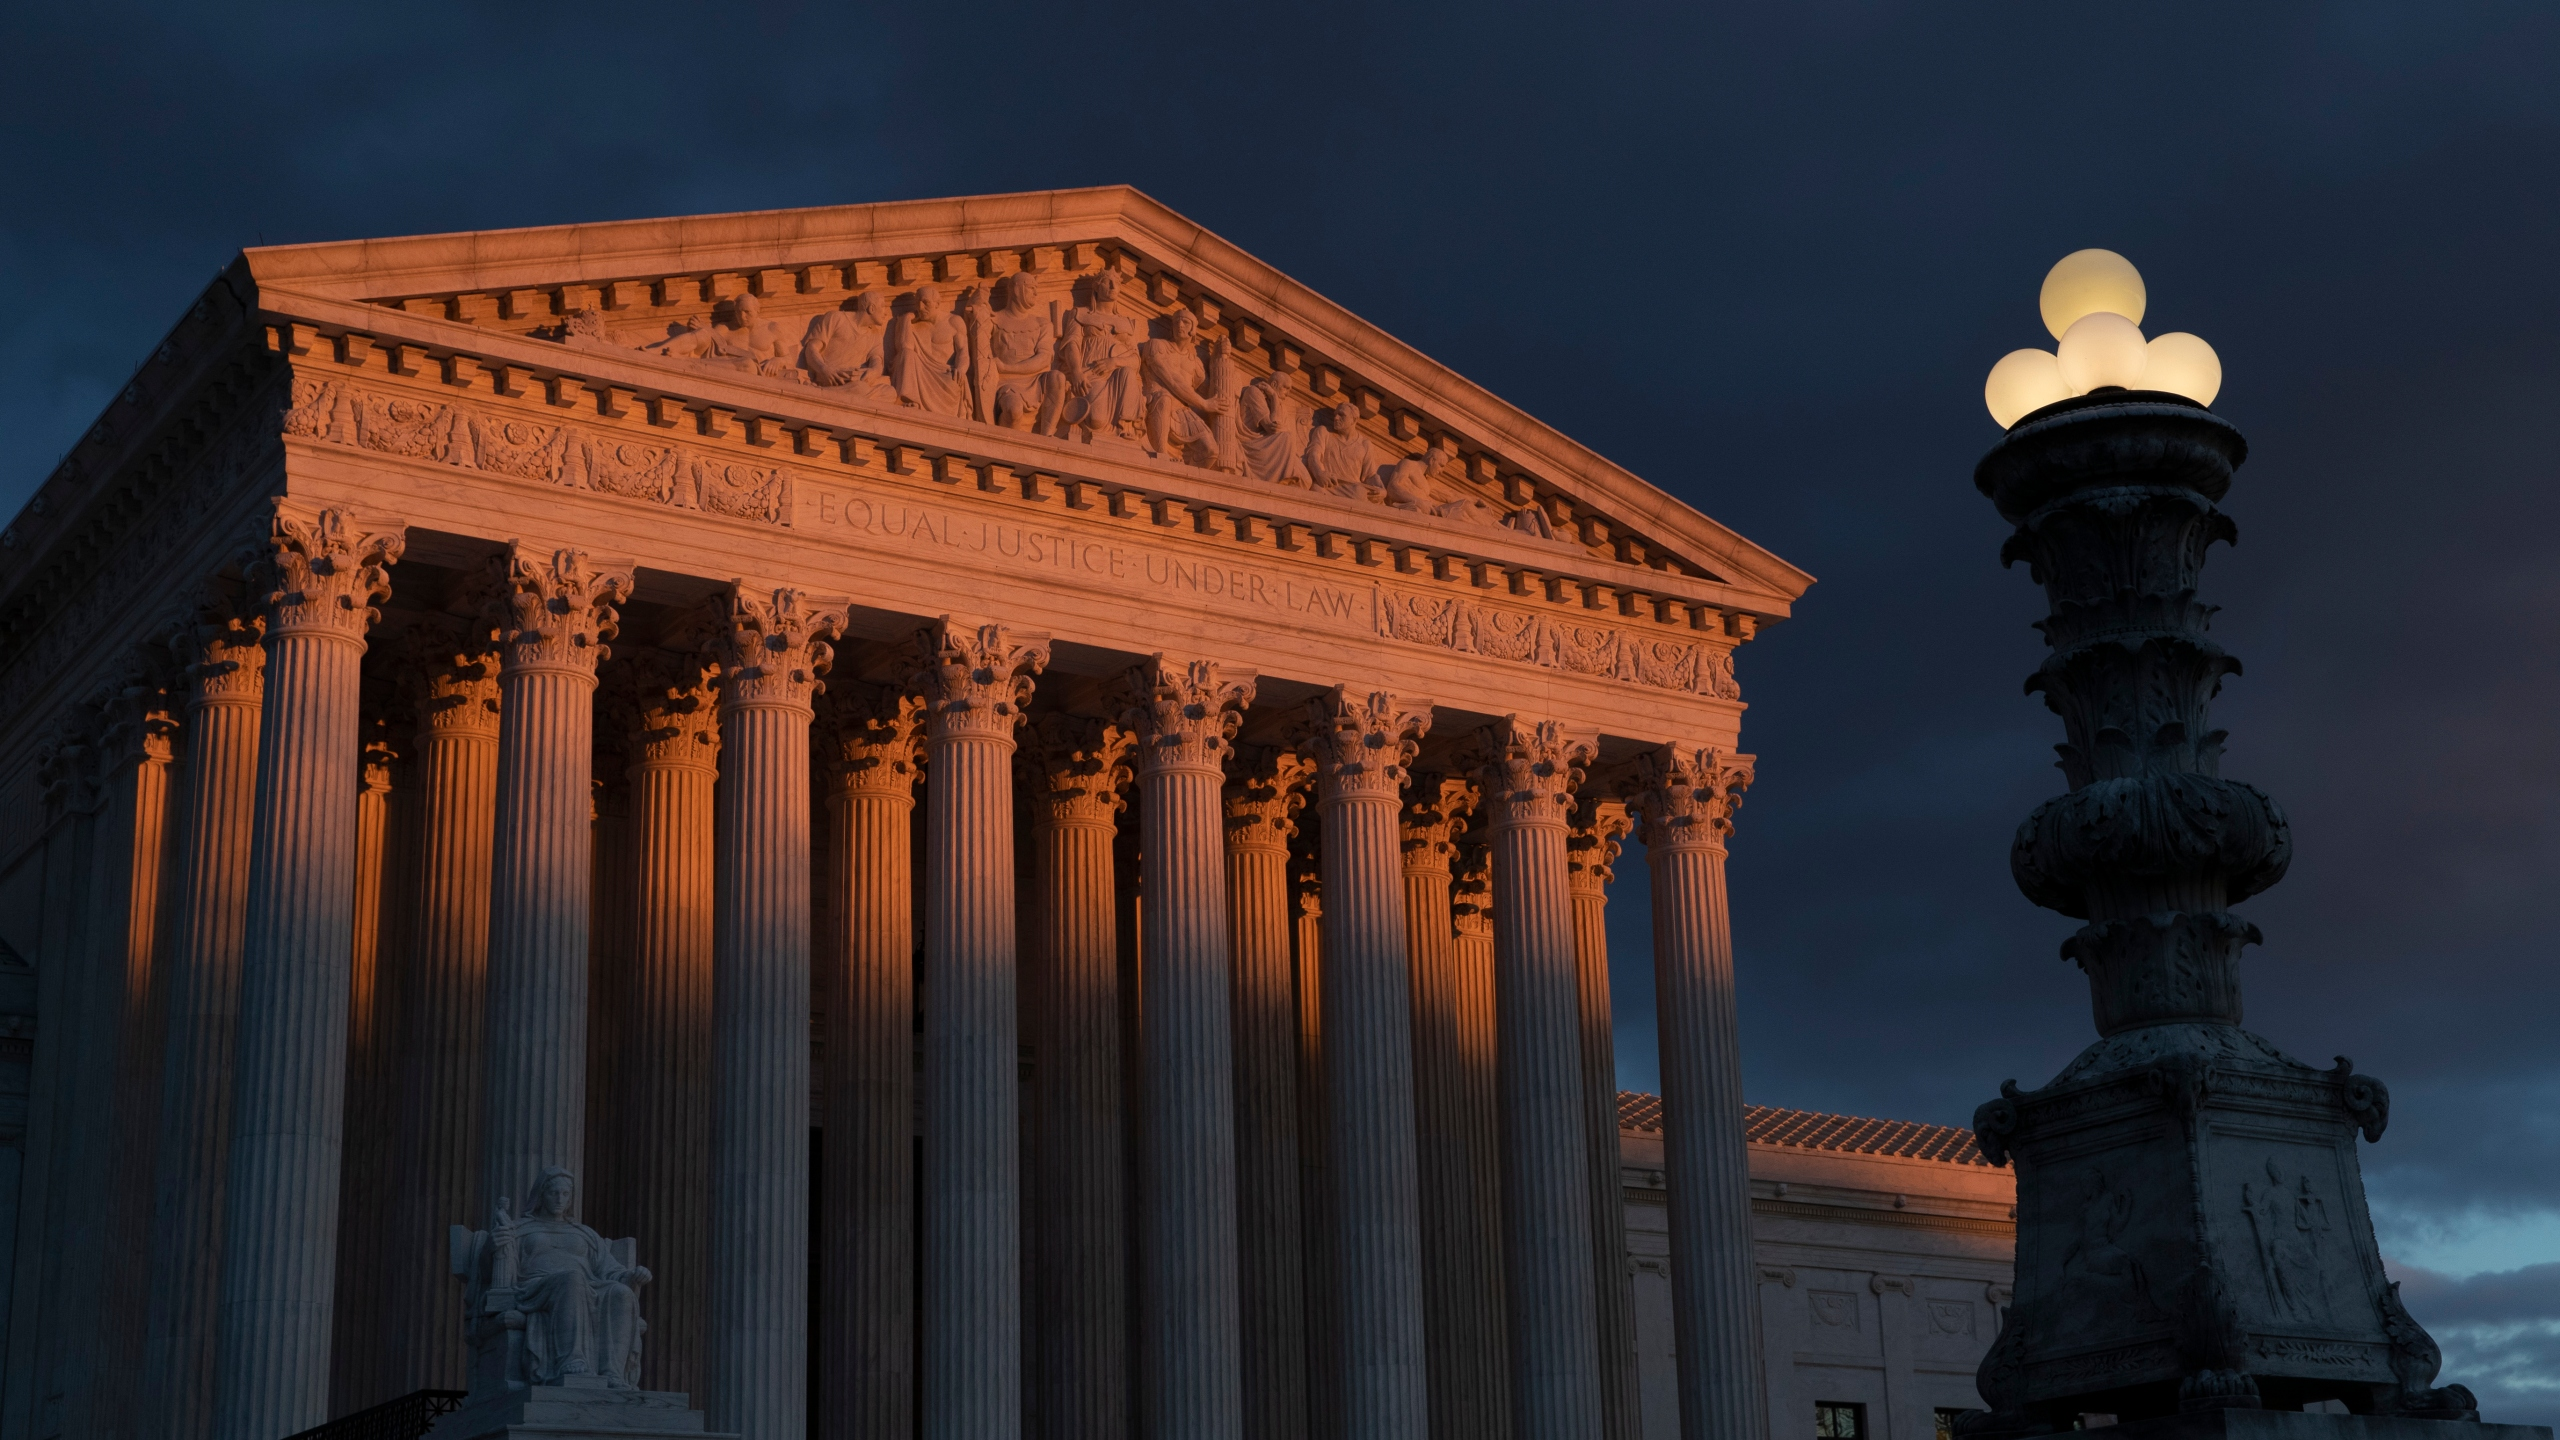 Supreme_Court_Wrongful_Convictions_60672-159532.jpg83917773